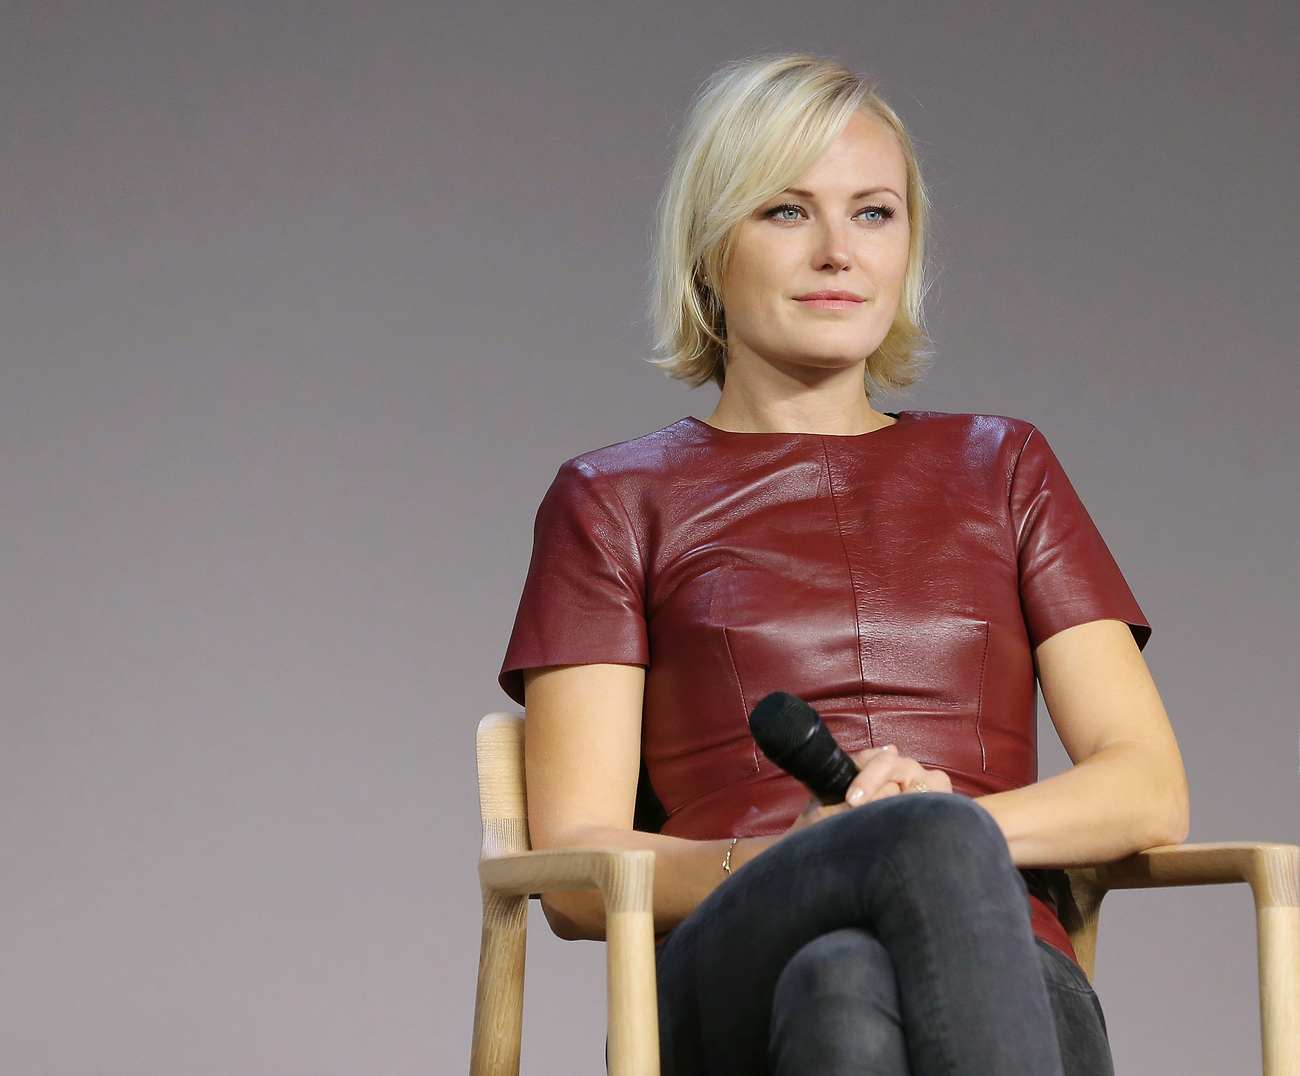 Malin Akerman discusses the film The Final Girls